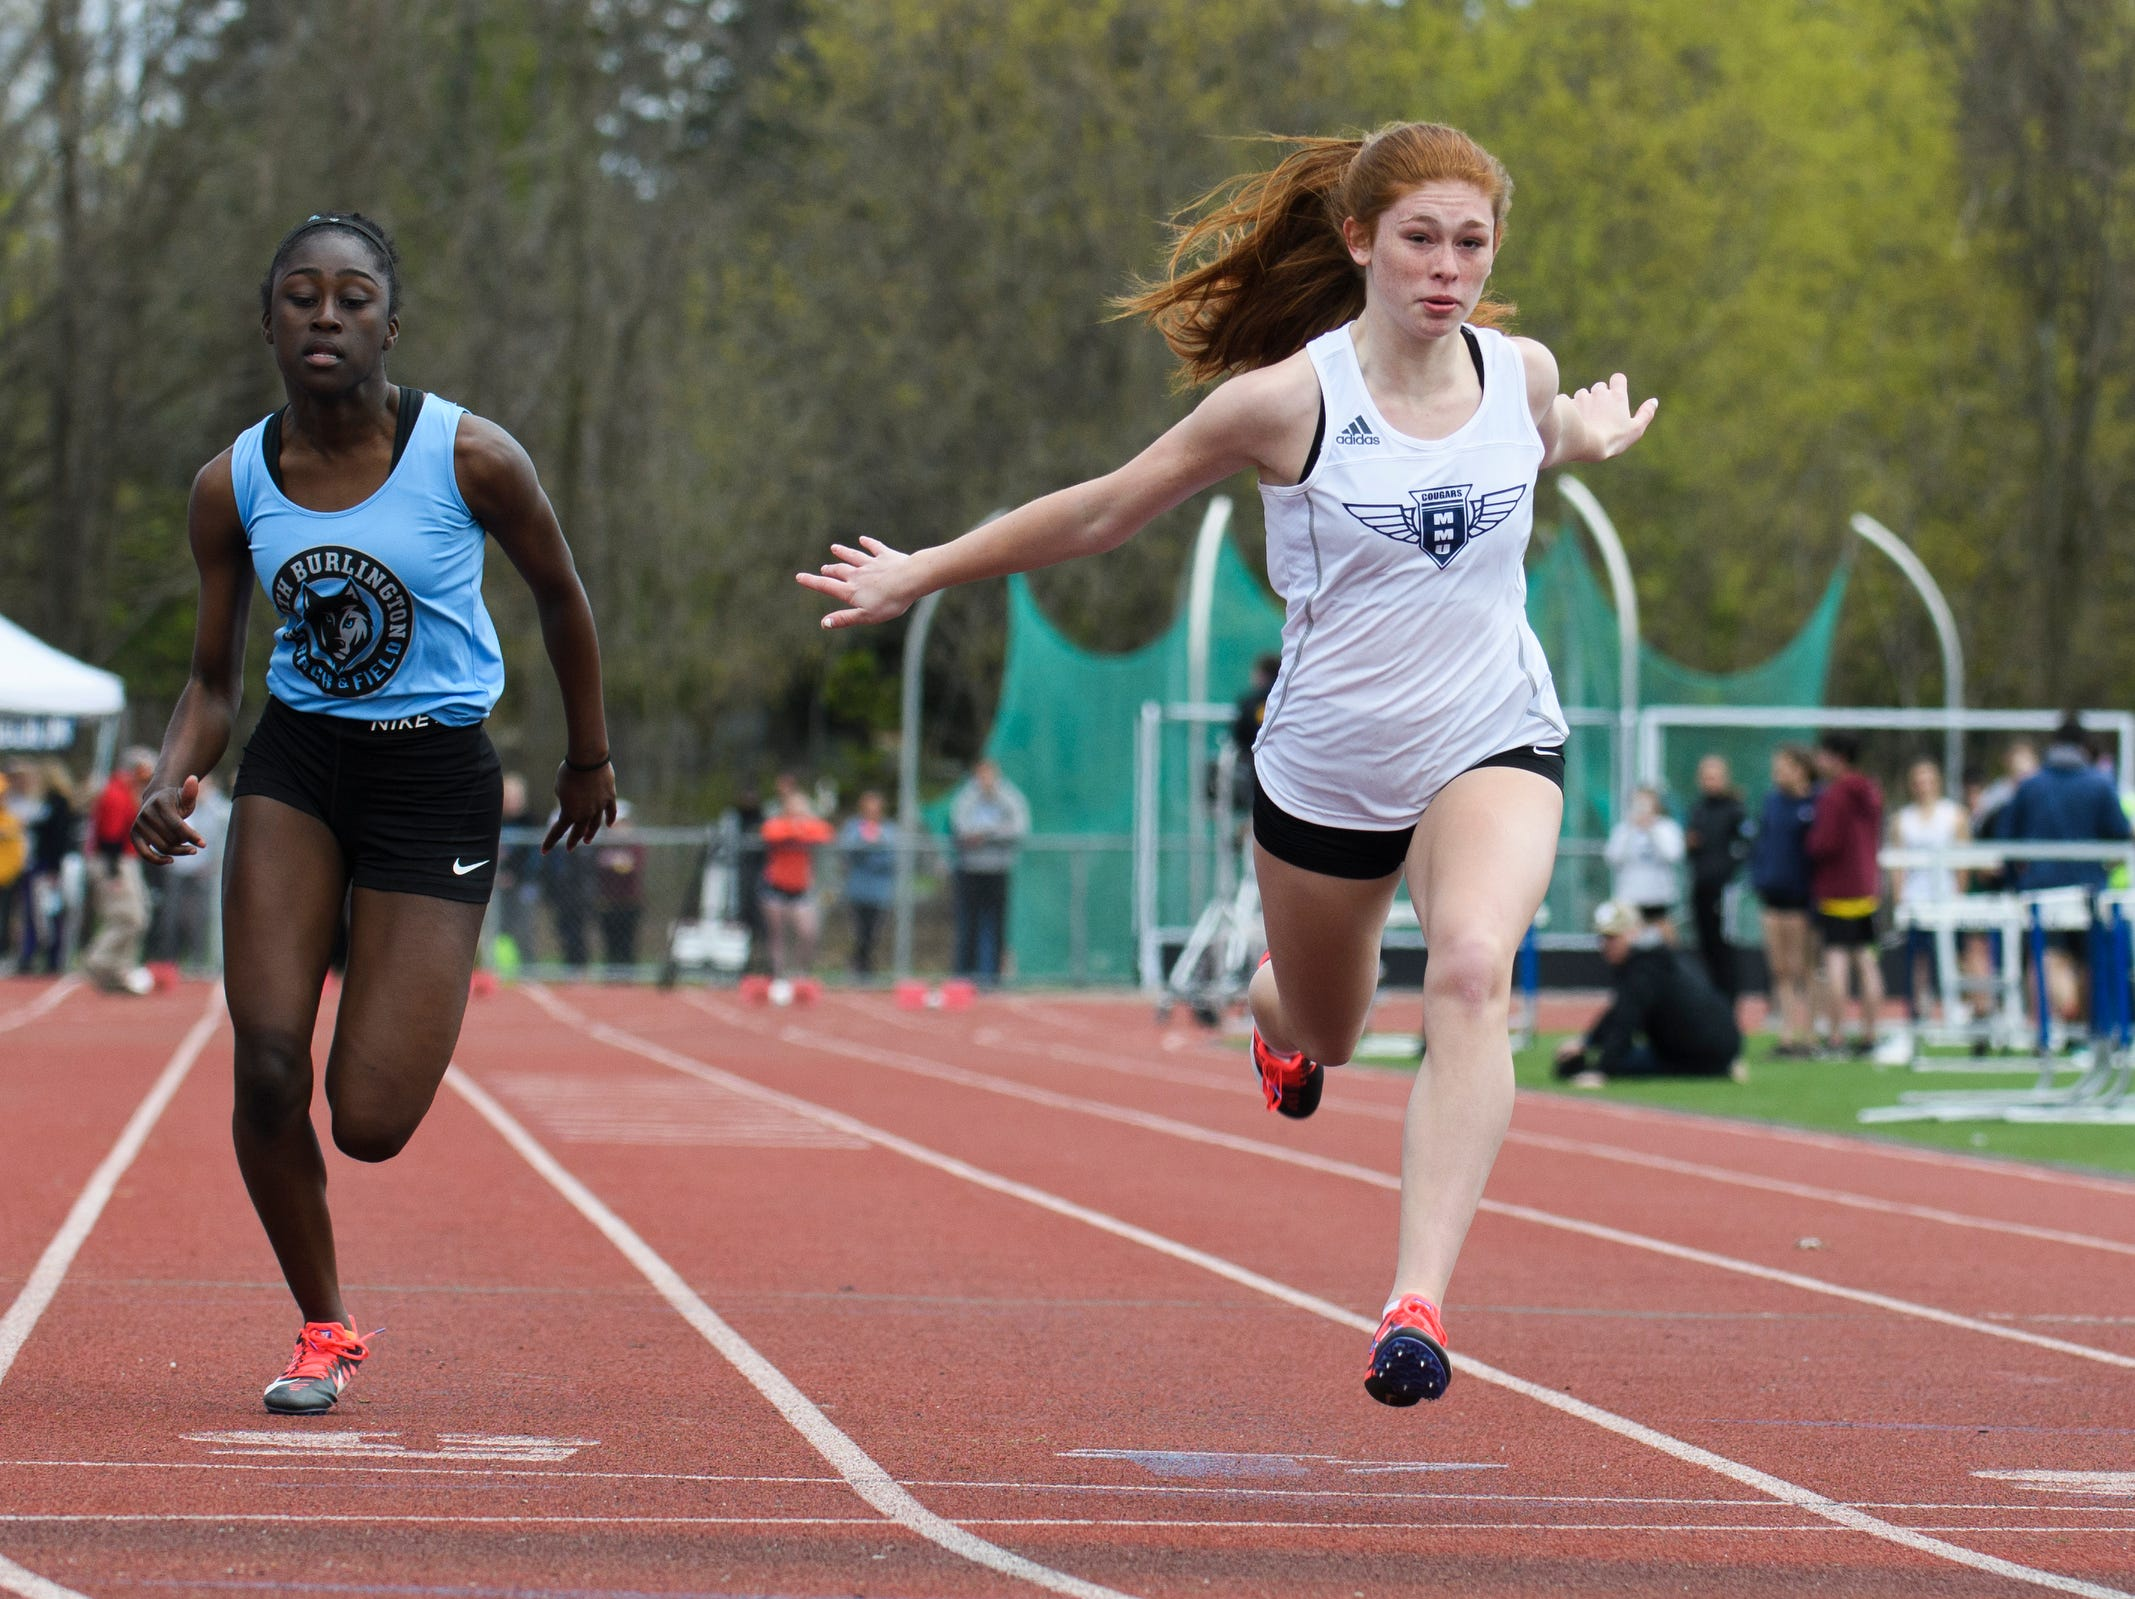 MMU's Jada Diamond crosses the finish line in first in the girls 100m dash during the Burlington Invitational high school track and field meet at Buck Hard Field on Saturday May 11, 2019 in Burlington, Vermont.